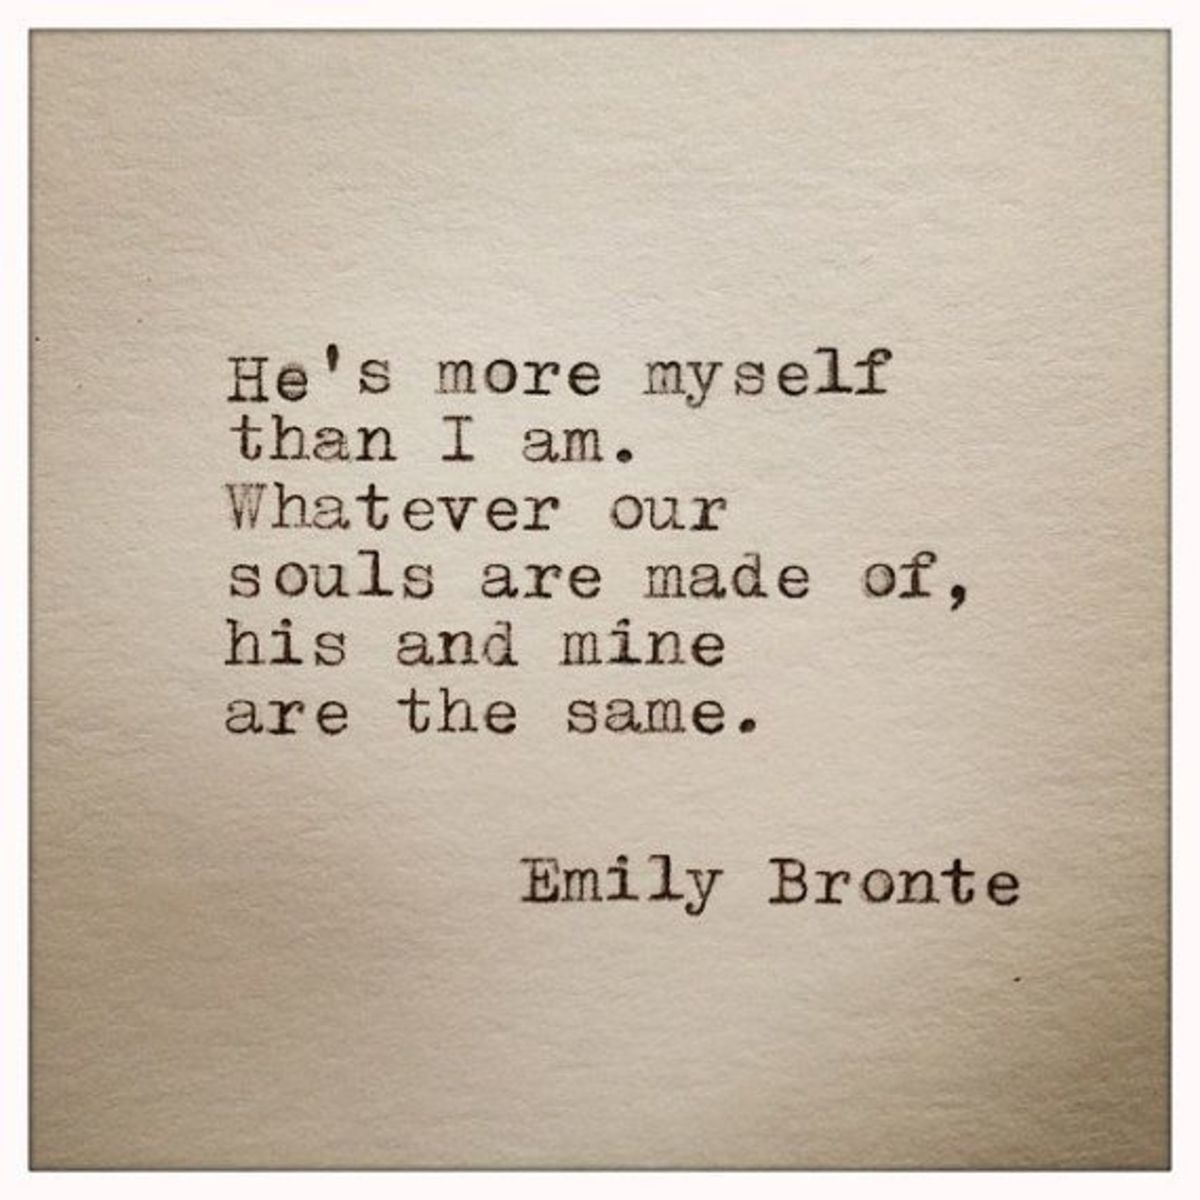 love quote from a woman's perspective Emily Bronte love quote